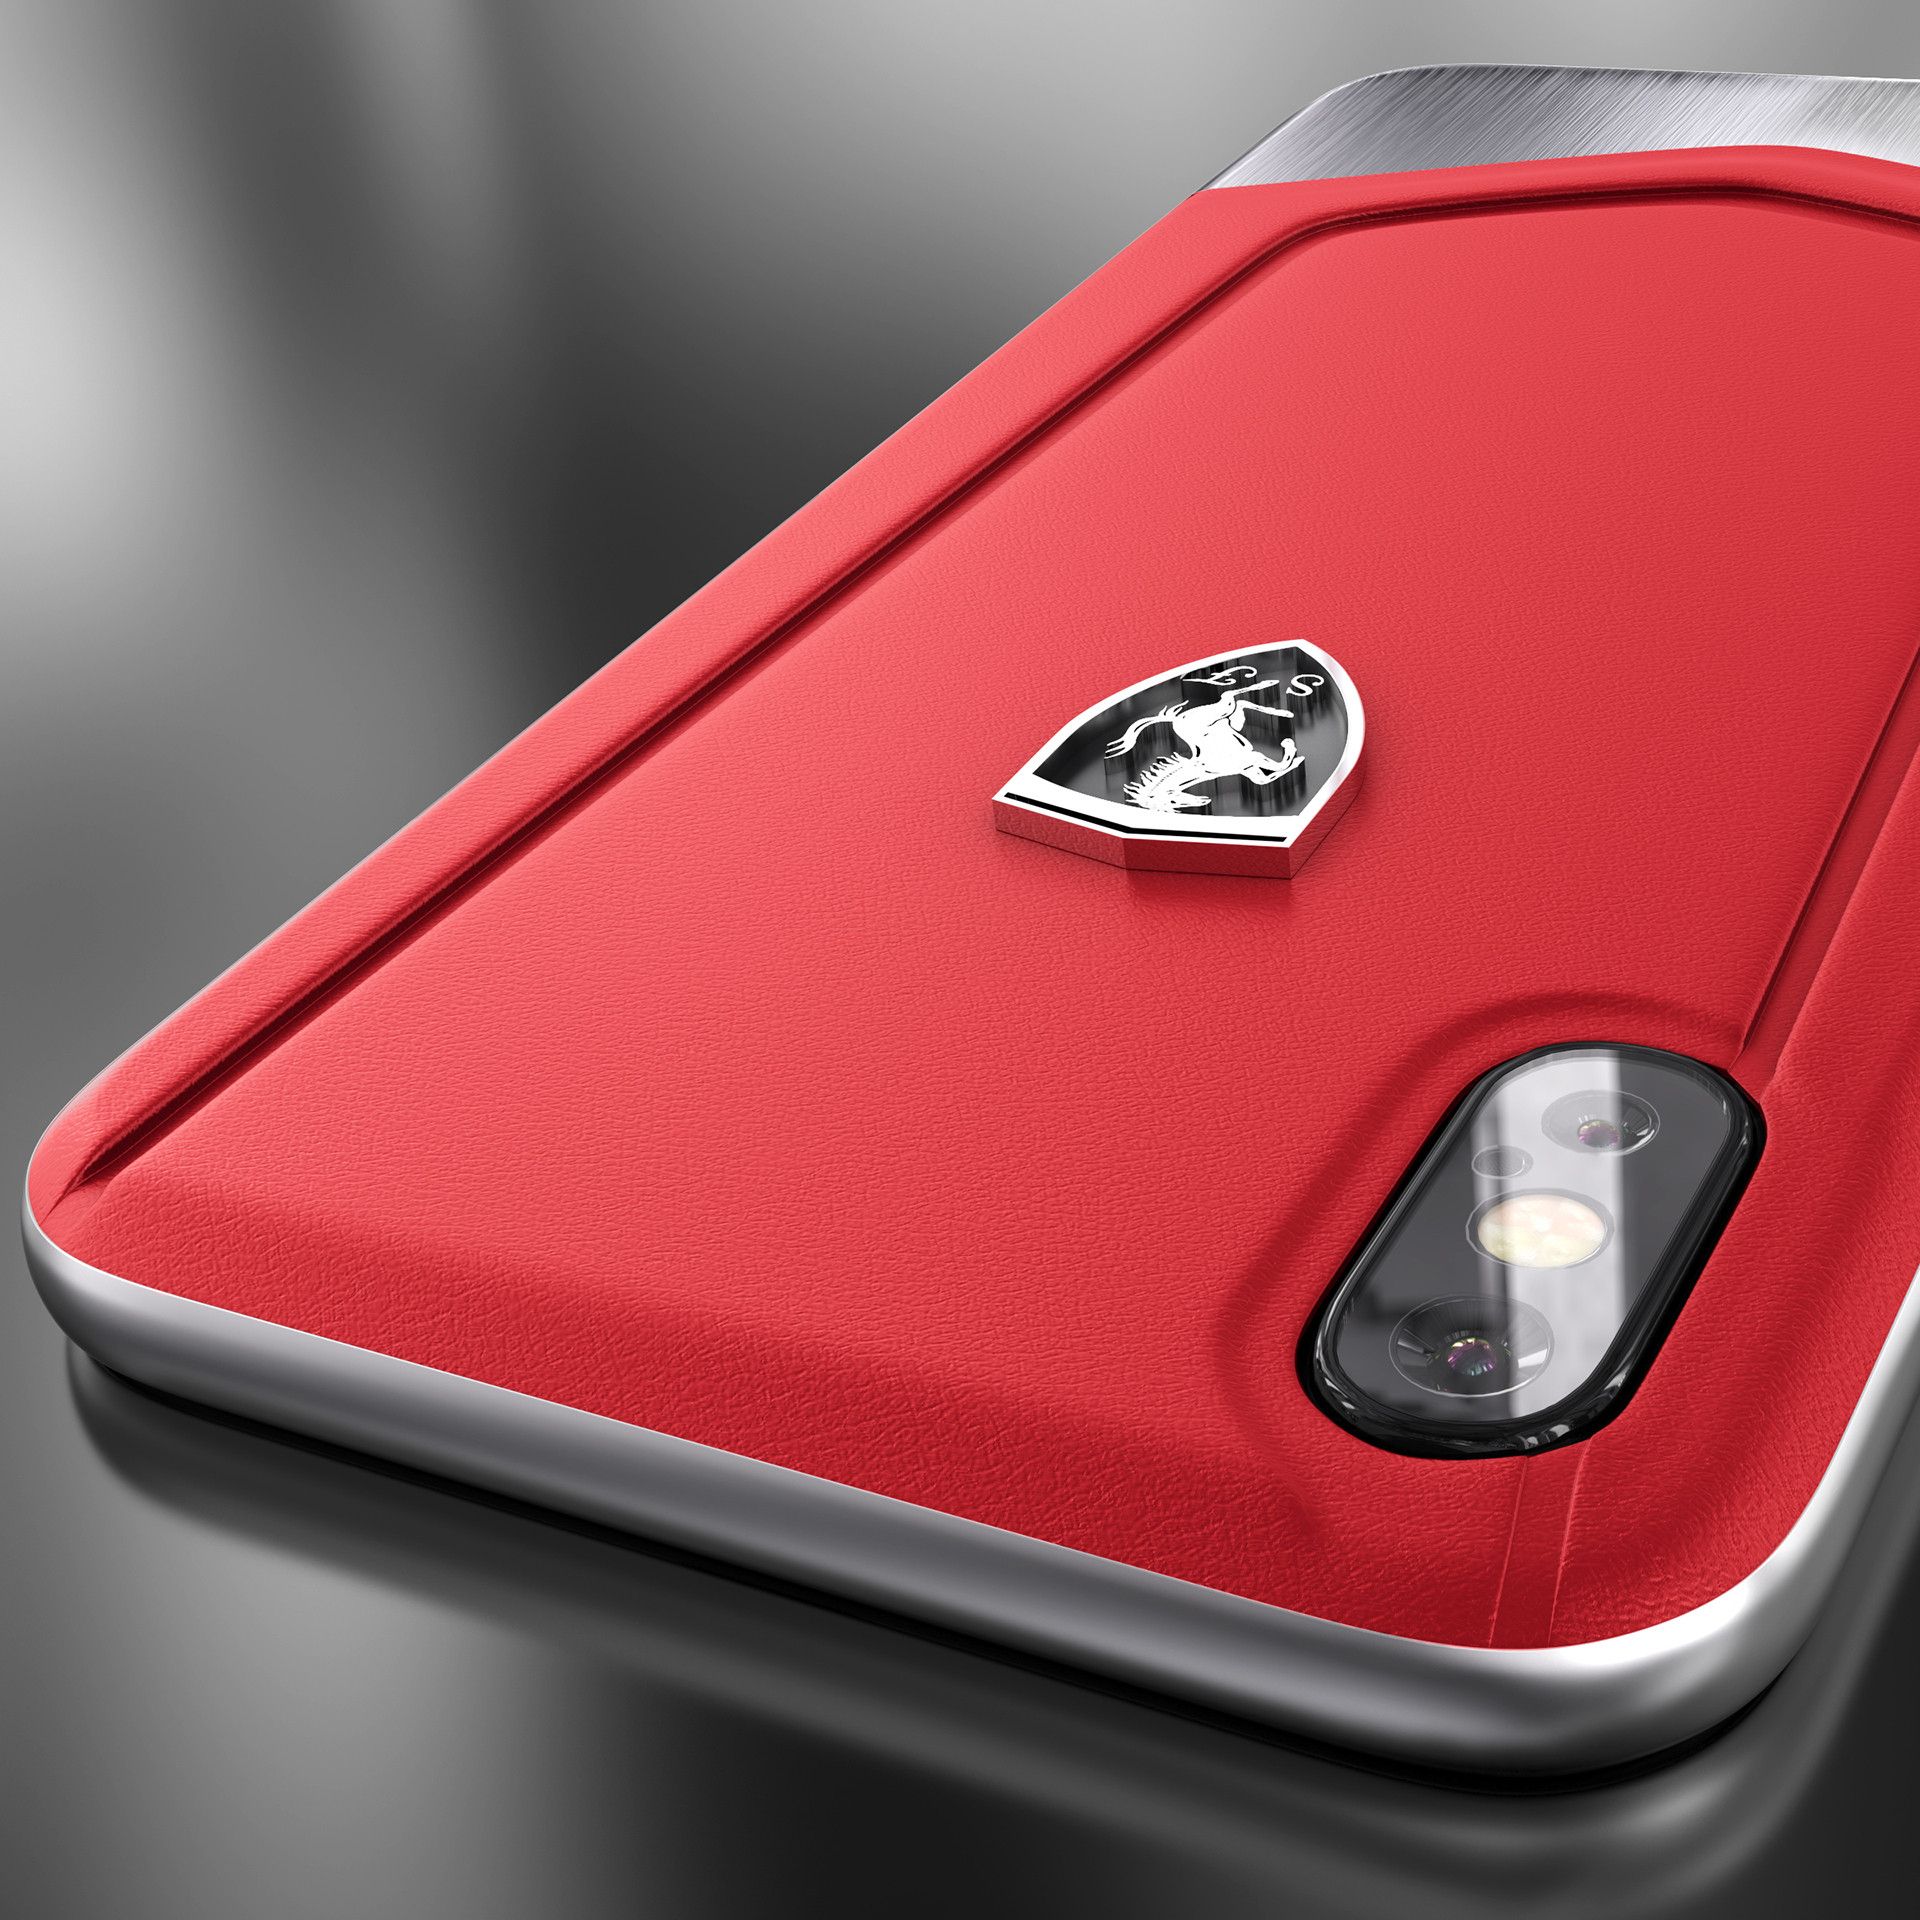 size 40 f26f0 81c67 Ferrari ® Apple iPhone X Moranello Series Luxurious Leather + Metal Case  Limited Edition Back Cover